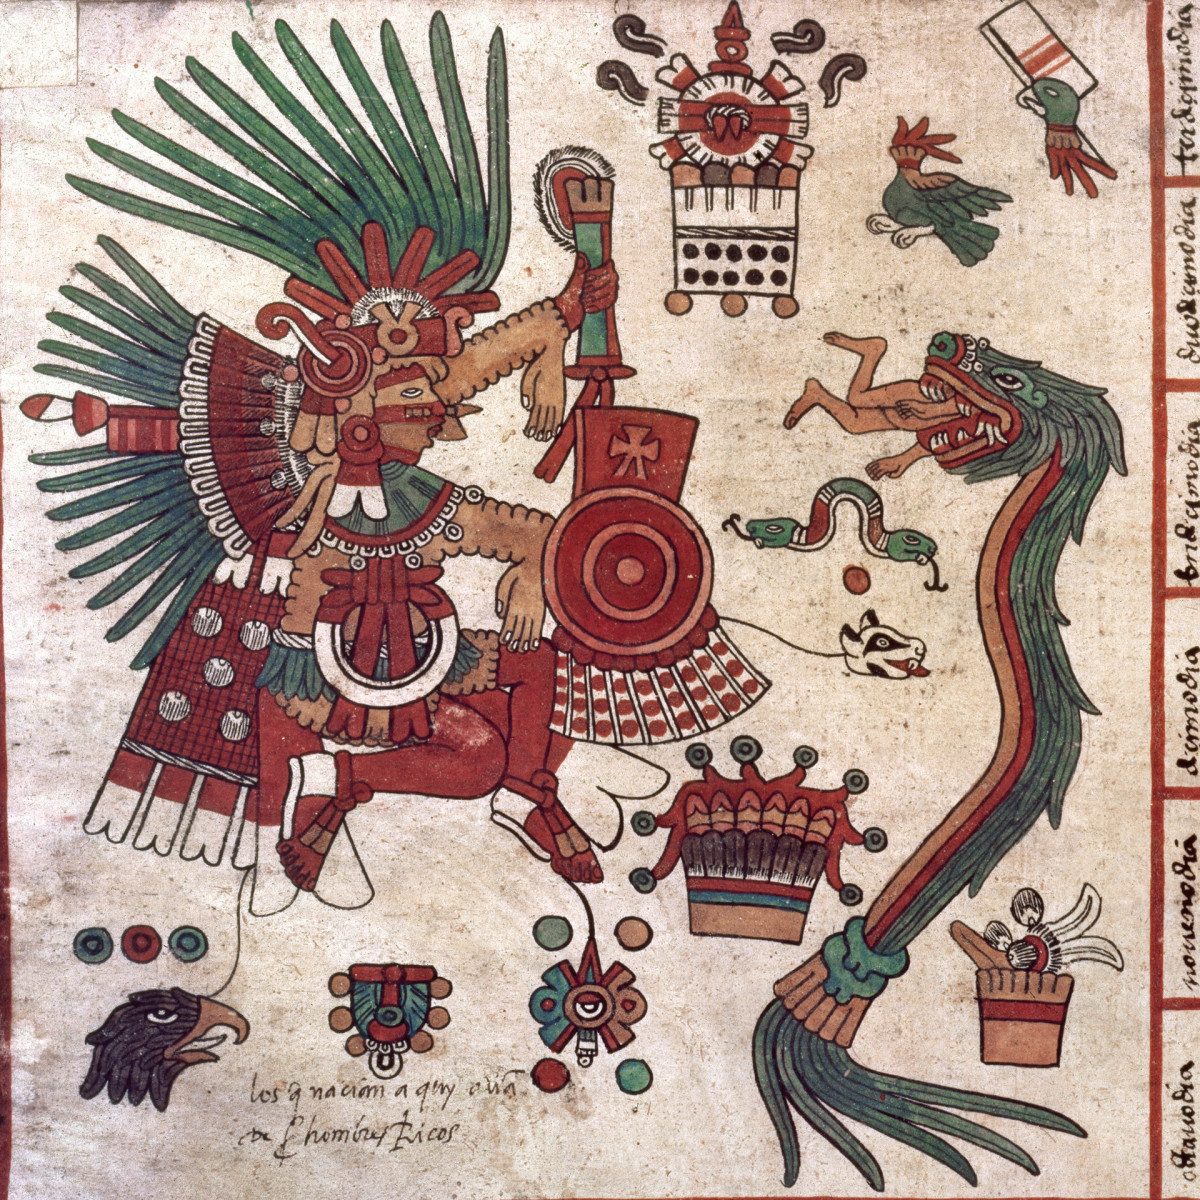 A detailed view of Aztec art depicting the god Tez-Calipoca and Quetzalcoatl (right) devouring a human being.